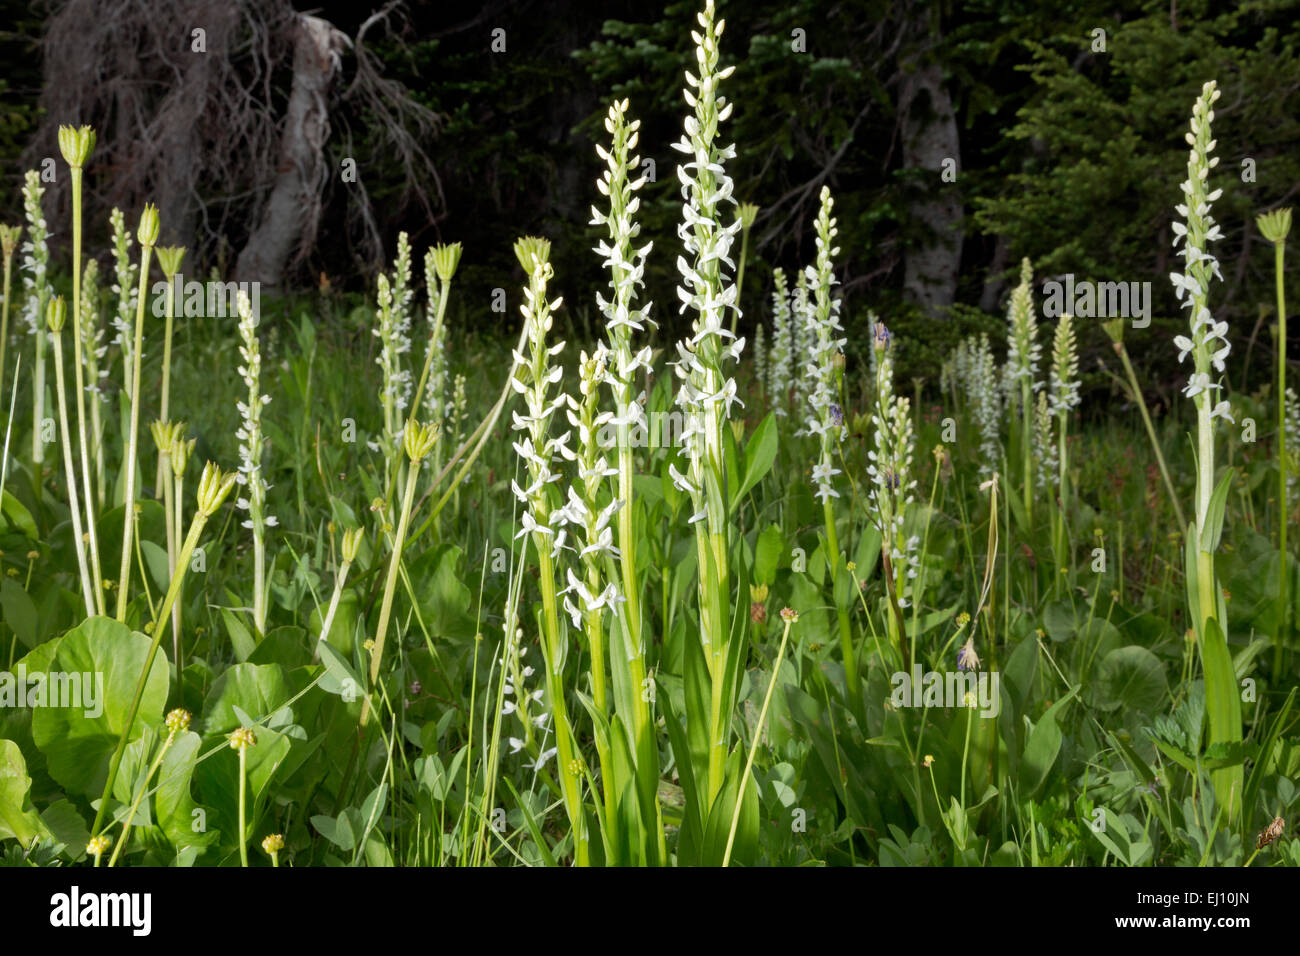 OR01709-00...OREGON - White bog orchid growing in meadow near Todd Lake in the Deschutes National Forest near Bend. - Stock Image